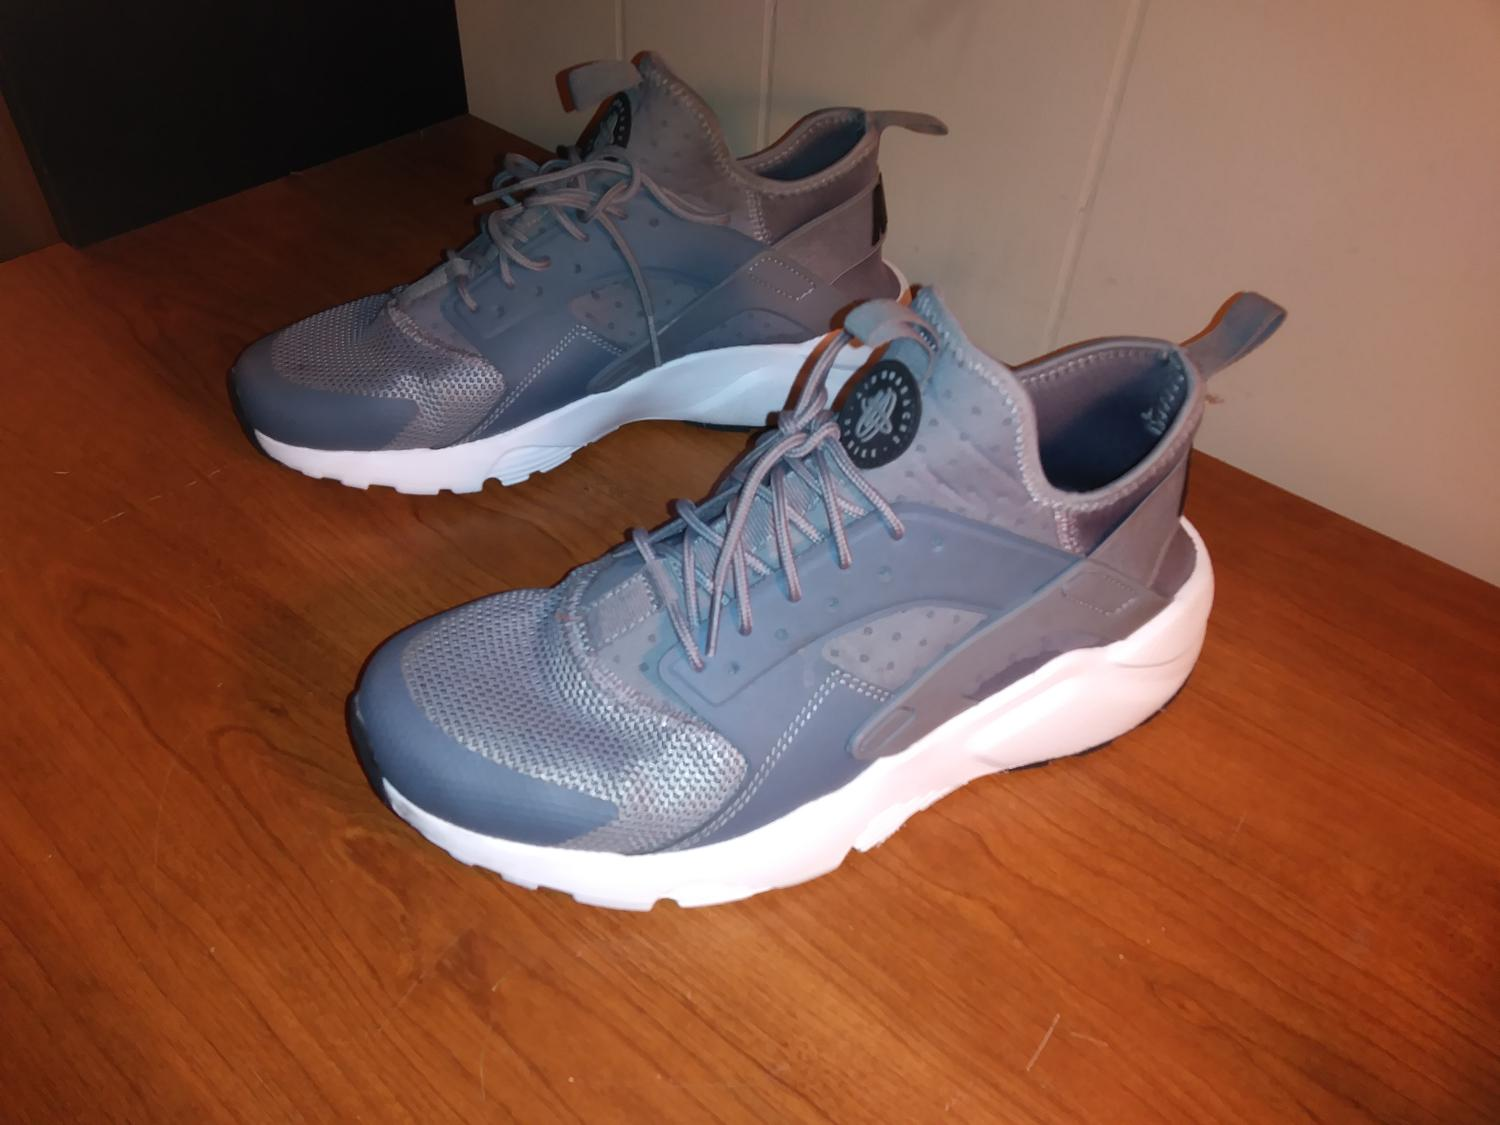 ... Nike Grey And White for sale in Charlotte, North Carolina for 2017